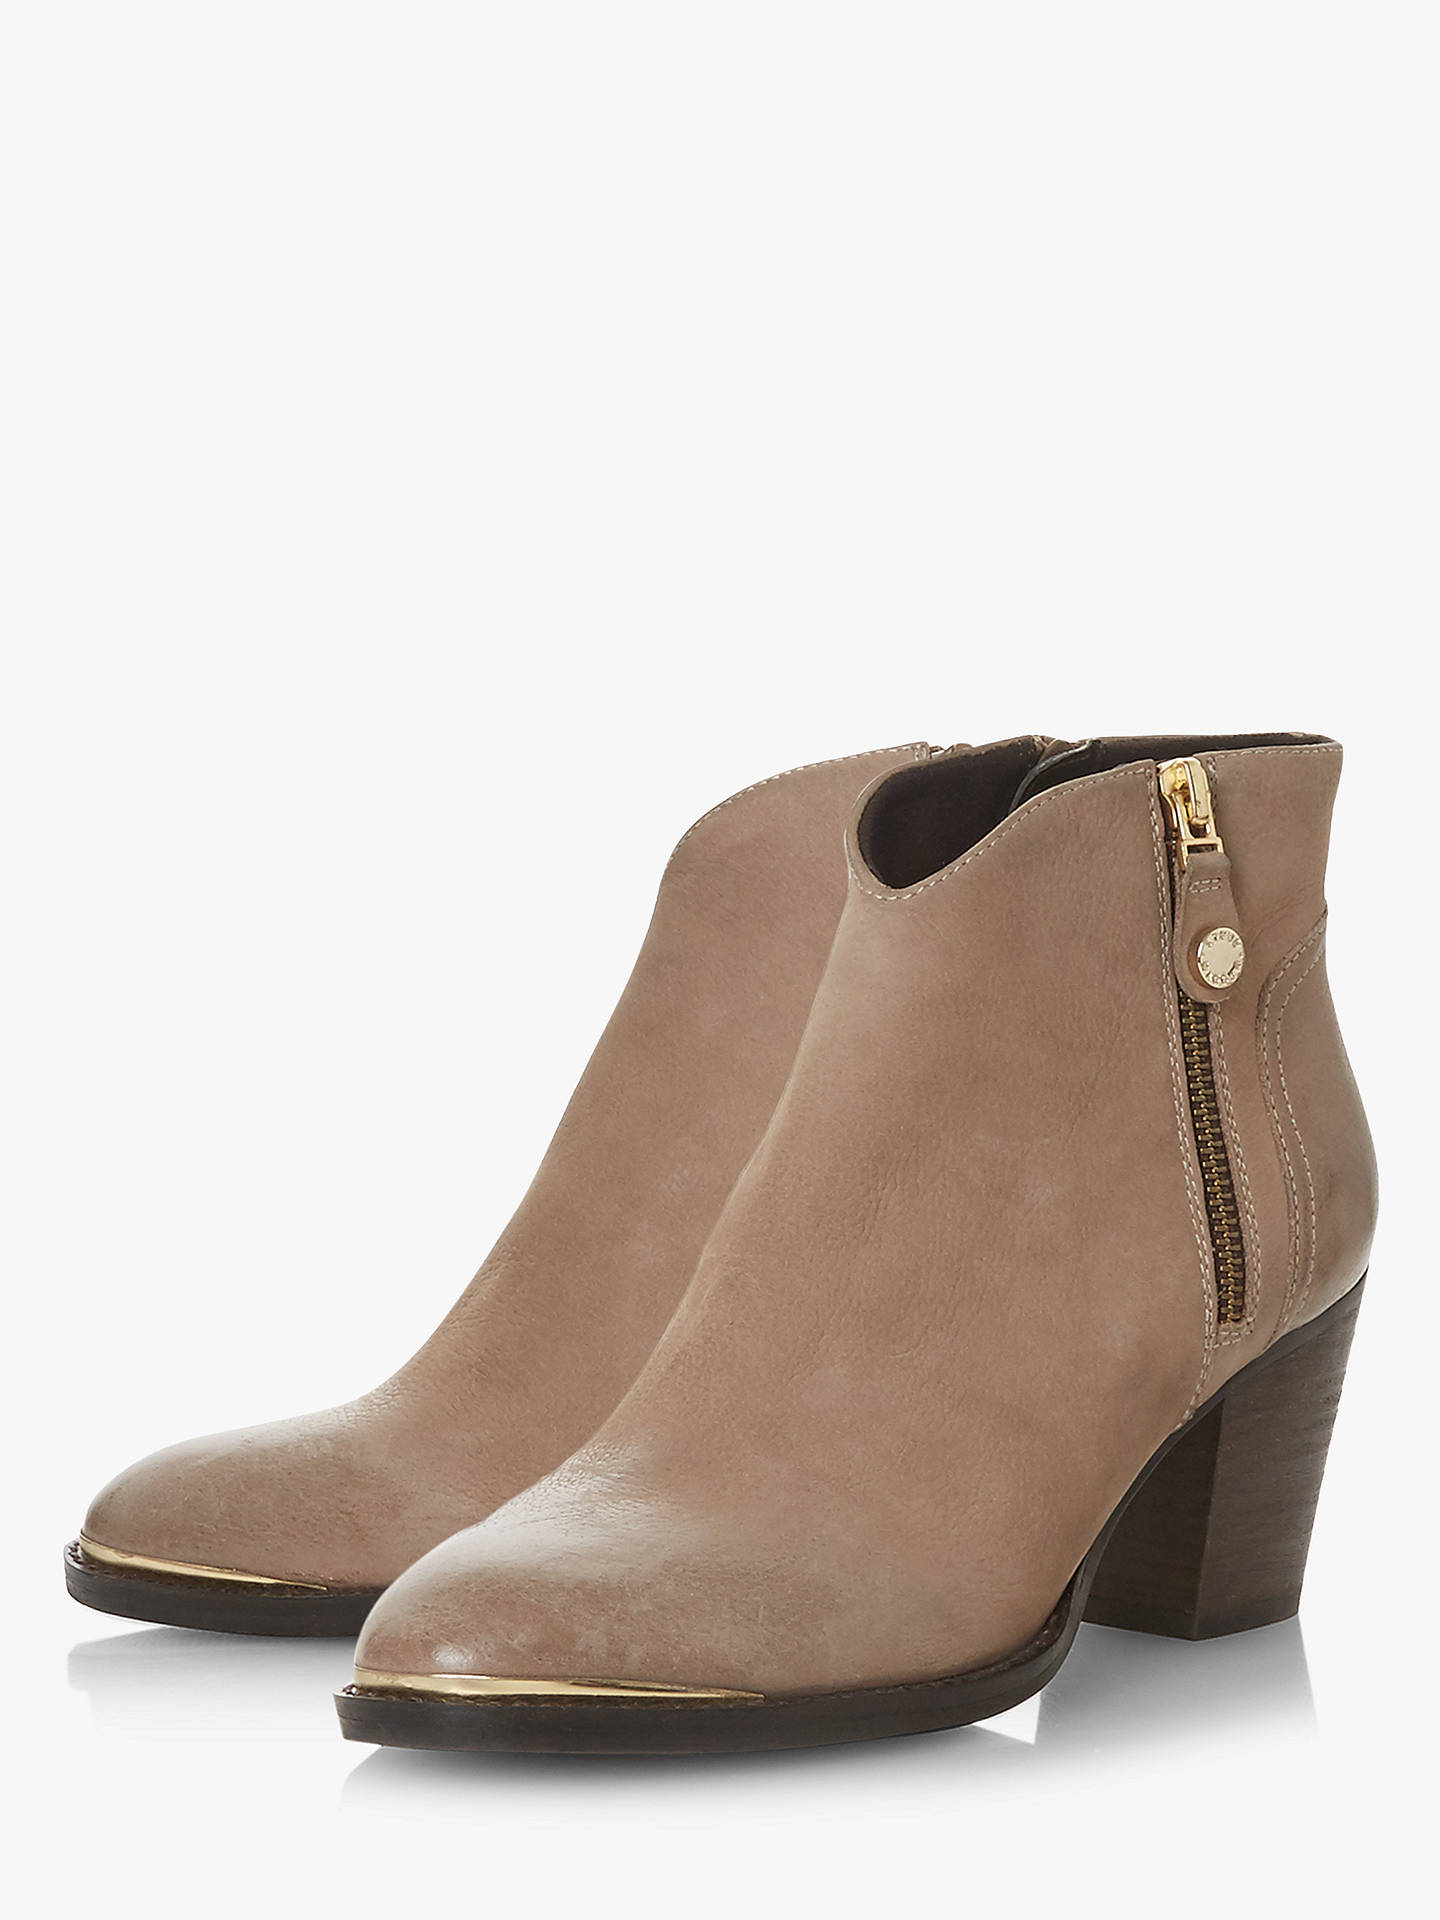 6e82a55944a Steve Madden Francy Ankle Boots, Taupe Leather at John Lewis & Partners